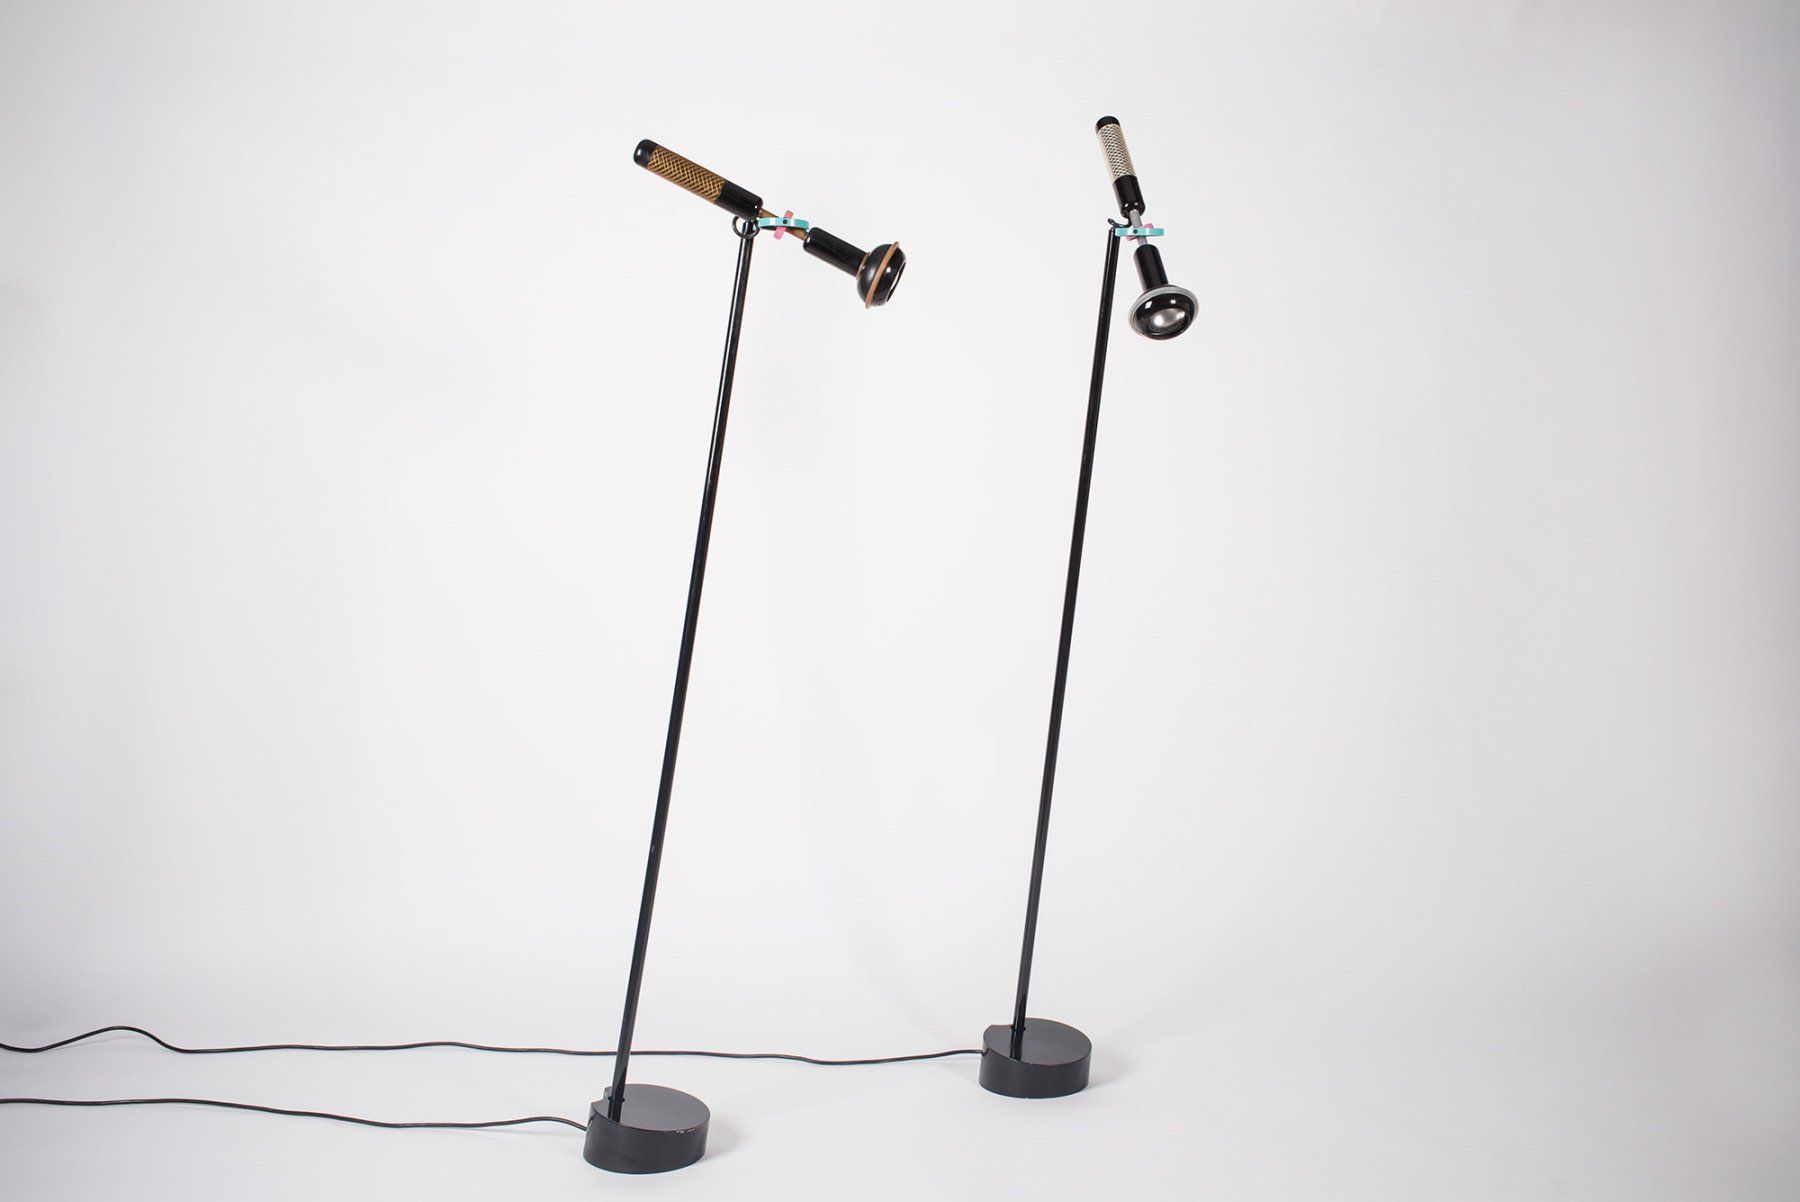 Lacquered metal, rubber, and plastic, Grip floor lamps designed by Achille Castiglioni